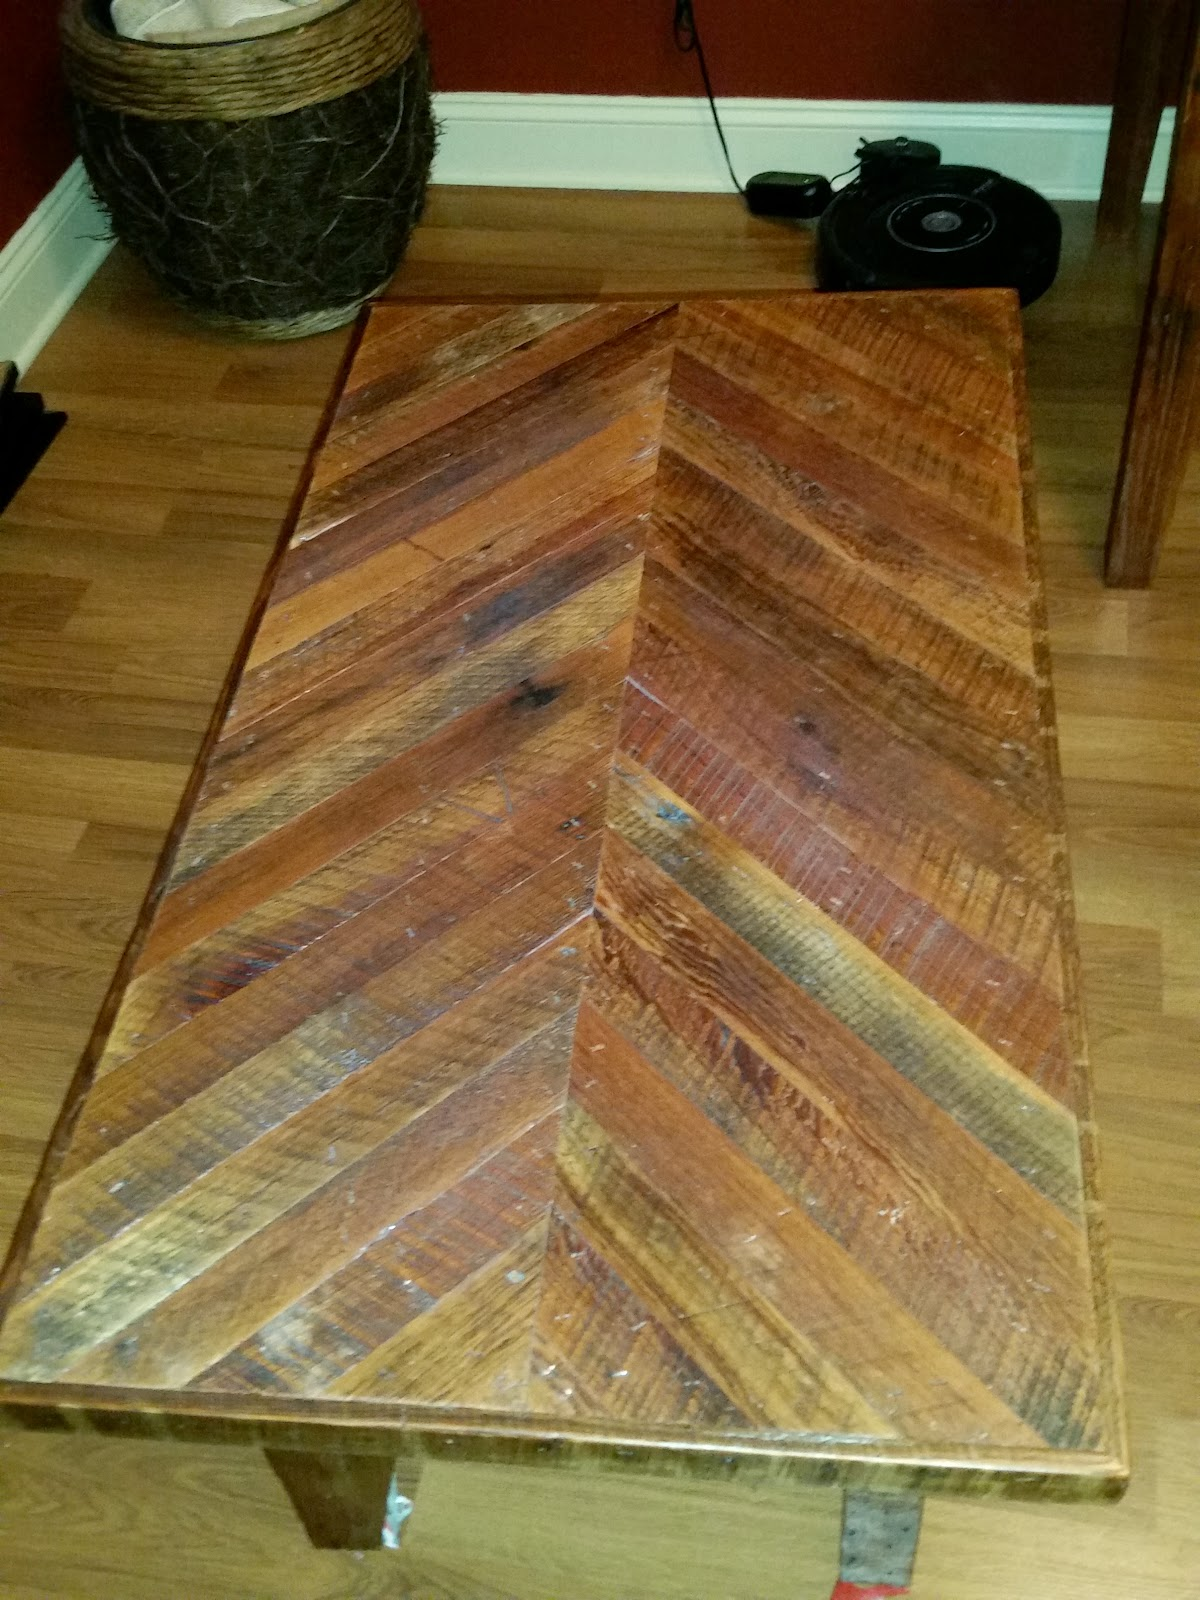 Coffee Table From Reclaimed Pine Taken From An Old Home In New Orleans.  Reproducible For $450.